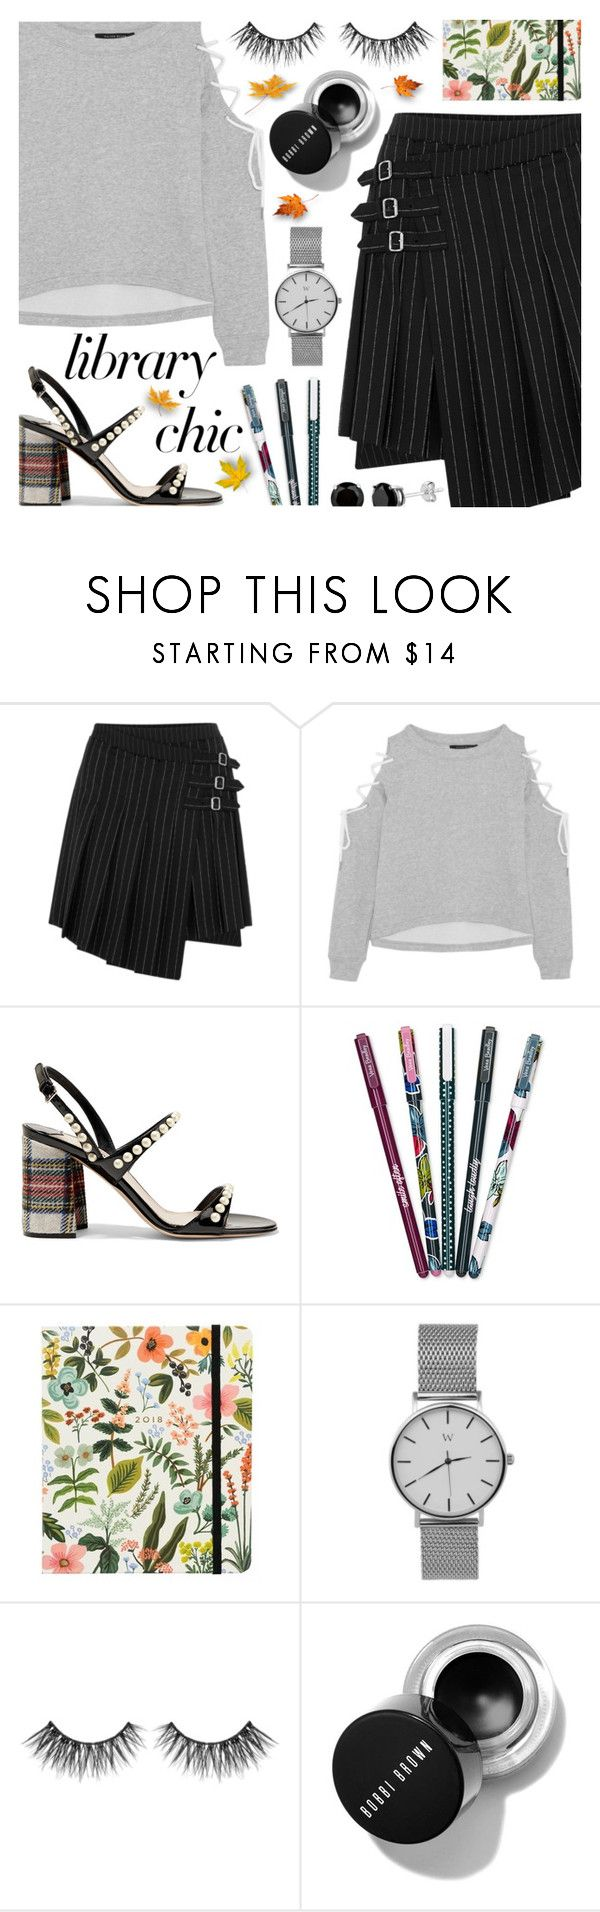 """Library Chic"" by ana3blue on Polyvore featuring McQ by Alexander McQueen, W118 by Walter Baker, Miu Miu, Vera Bradley and Berylune"